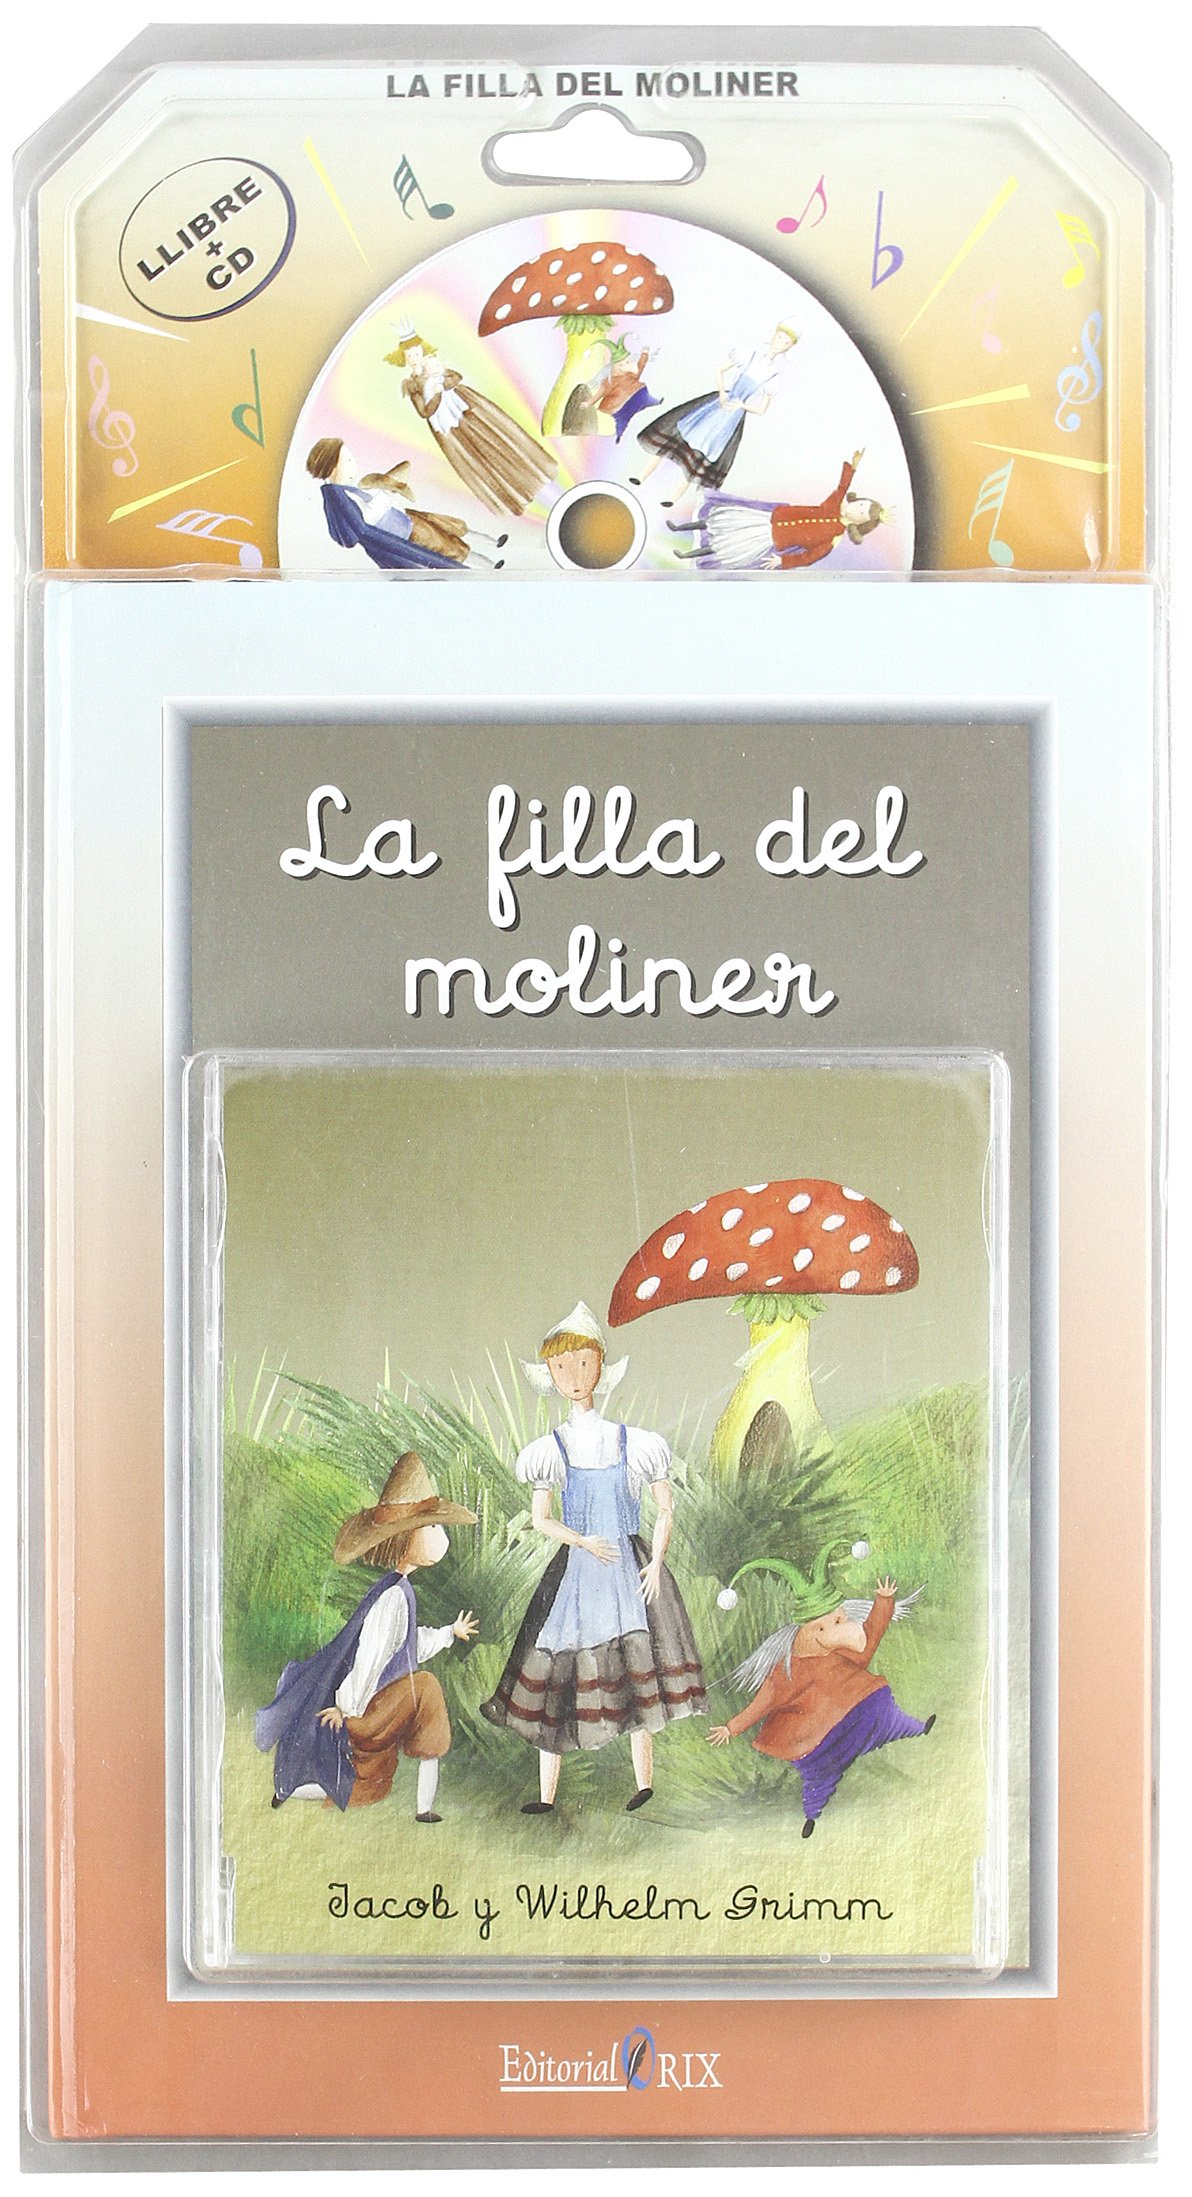 Filla Del Moliner, La Cd-C: Amazon.es: Jacob Grimm, Wilhelm Grimm: Libros